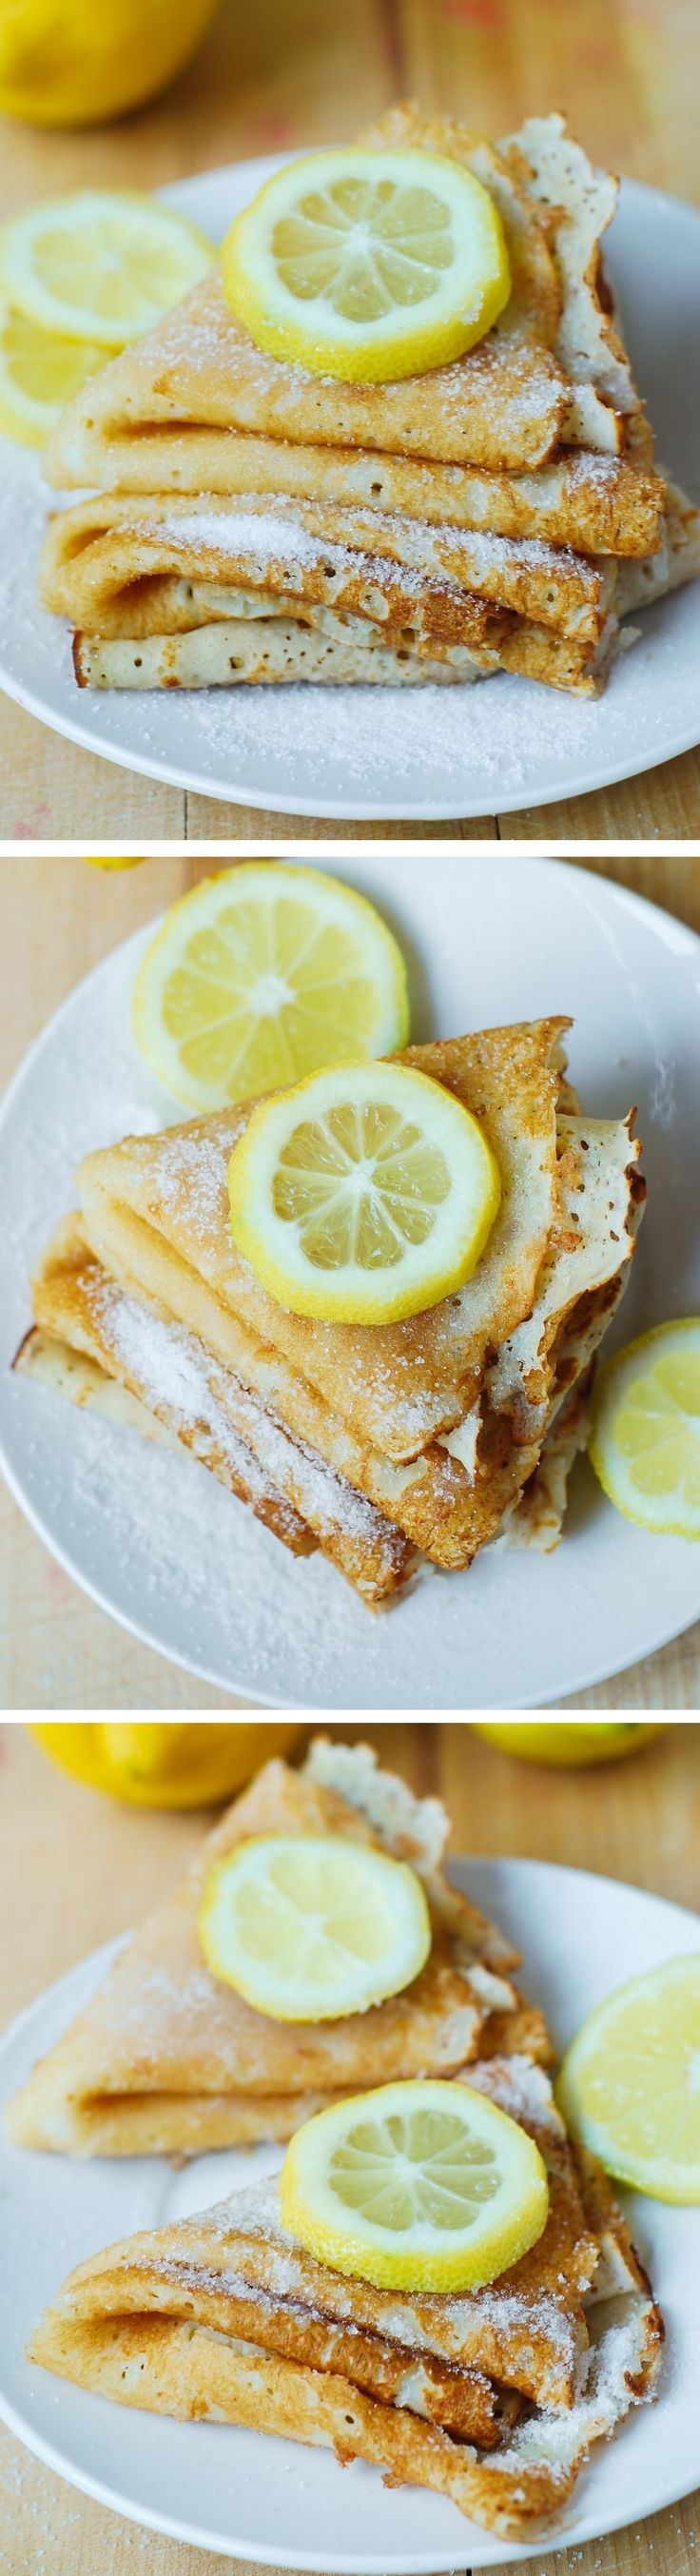 Lemon Sugar Dessert Crepes - easy-to-make and so delicious! #Thanksgiving #Fall #Holidays